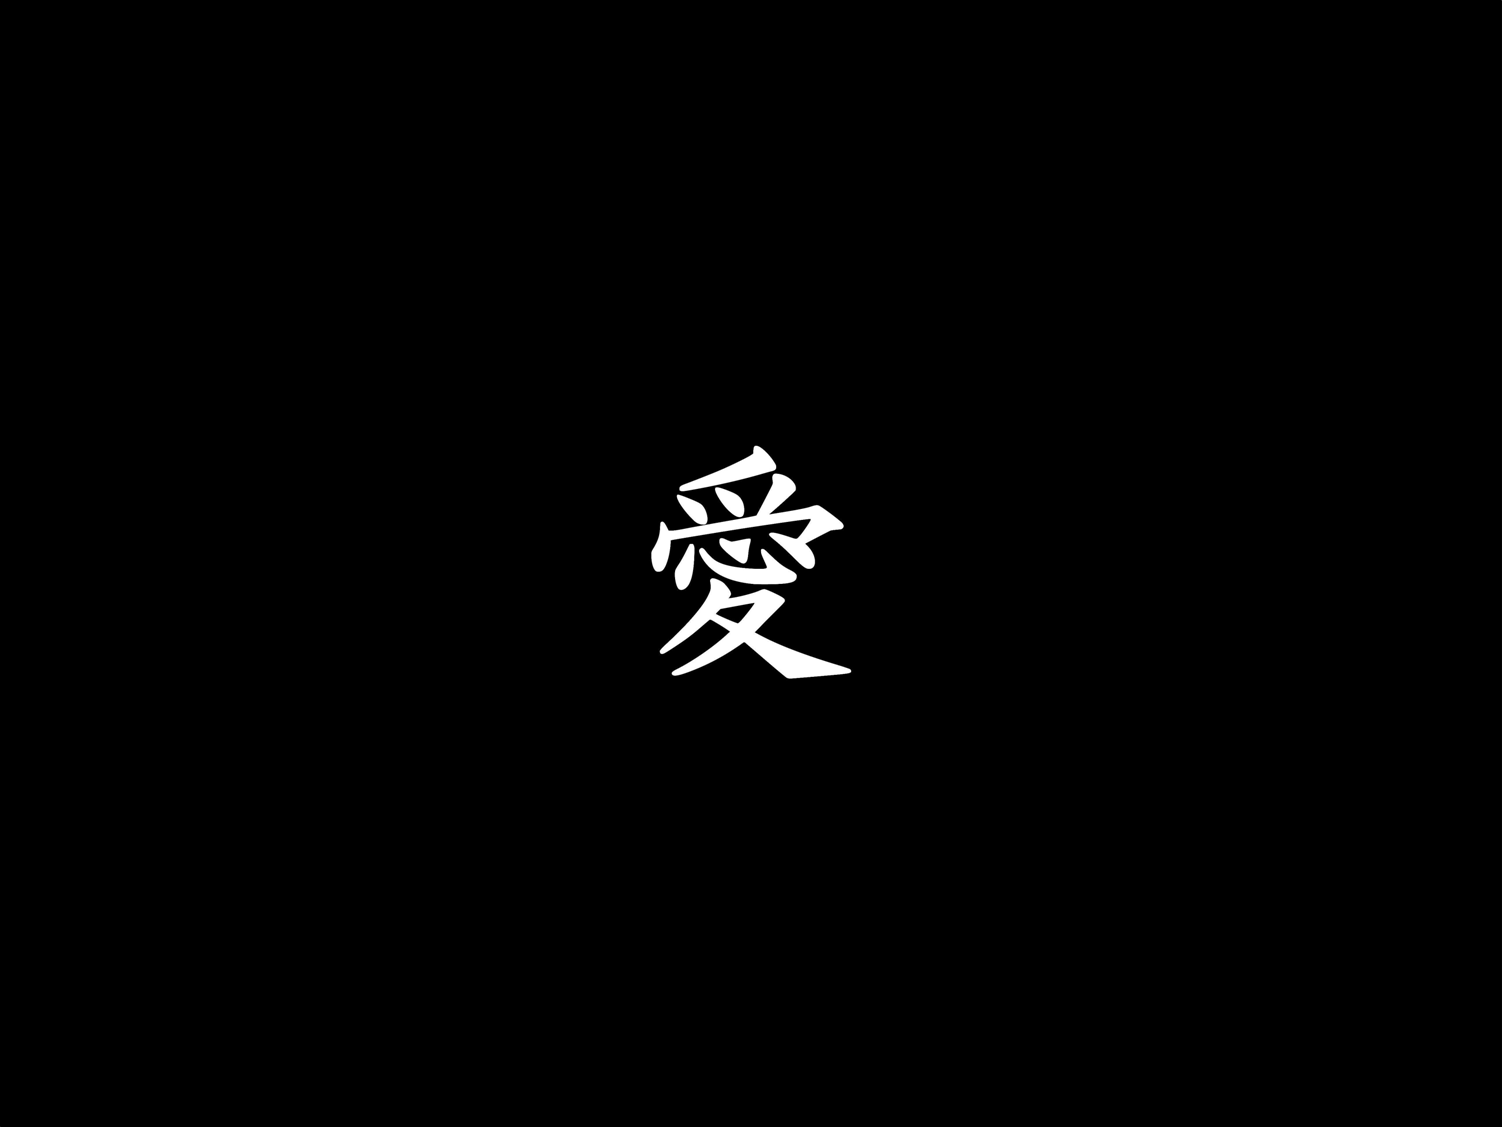 Love Wallpaper Black Background : Kanji Wallpaper - WallpaperSafari